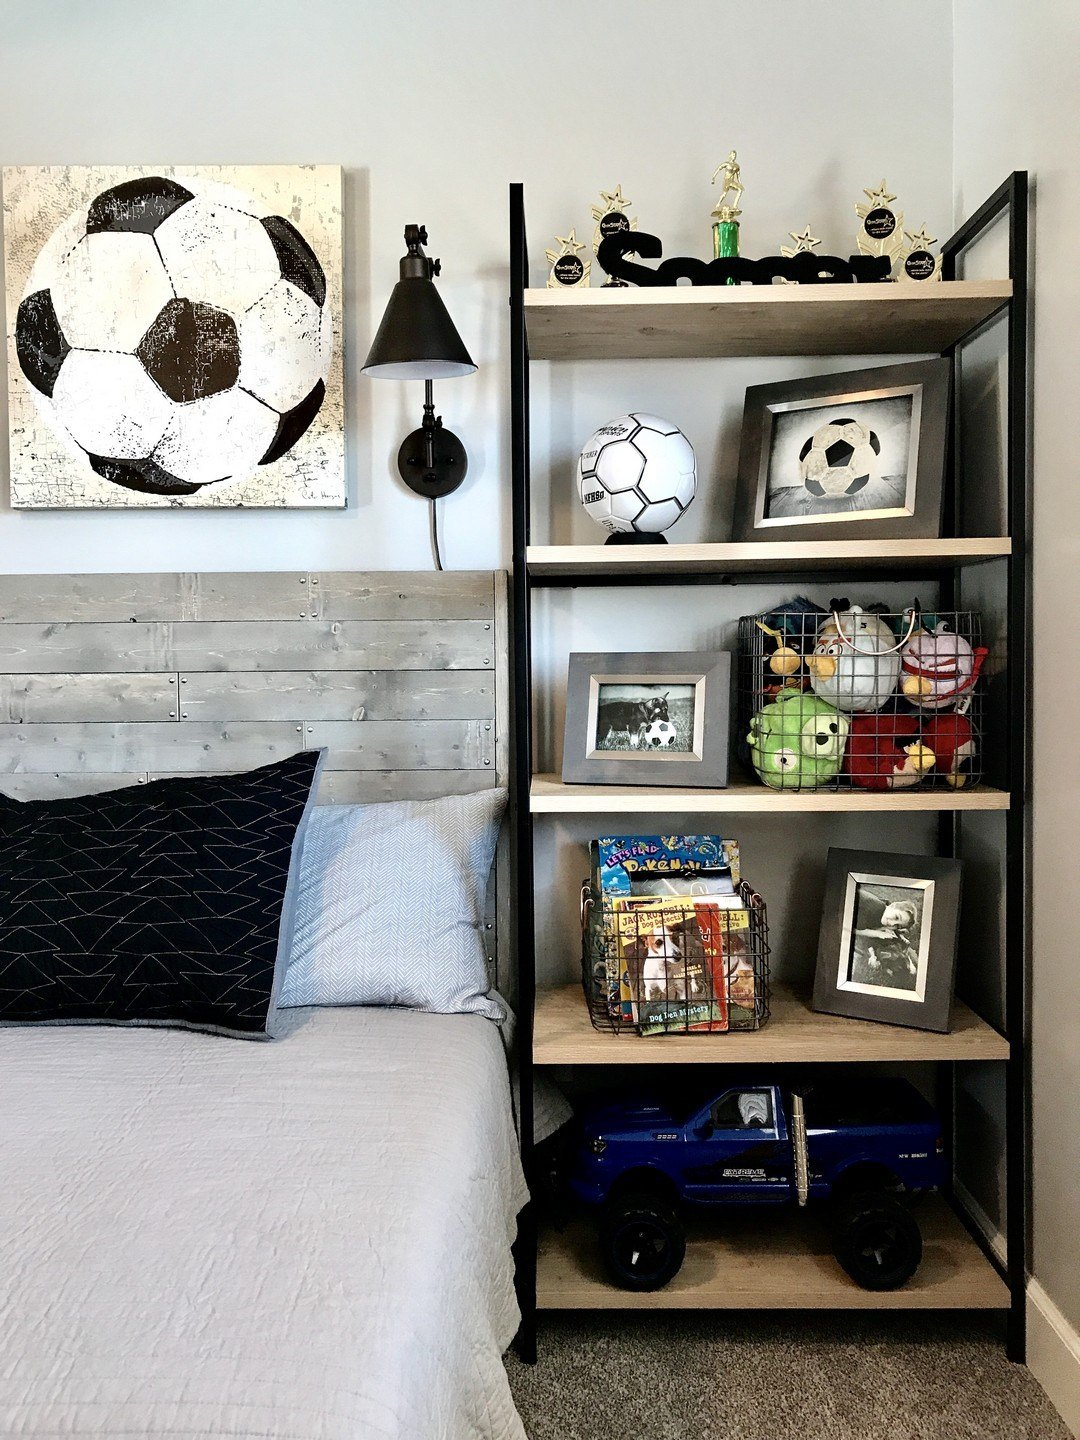 Best Stylish Soccer Themed Bedroom Design For Boys 3 Decomagz With Pictures